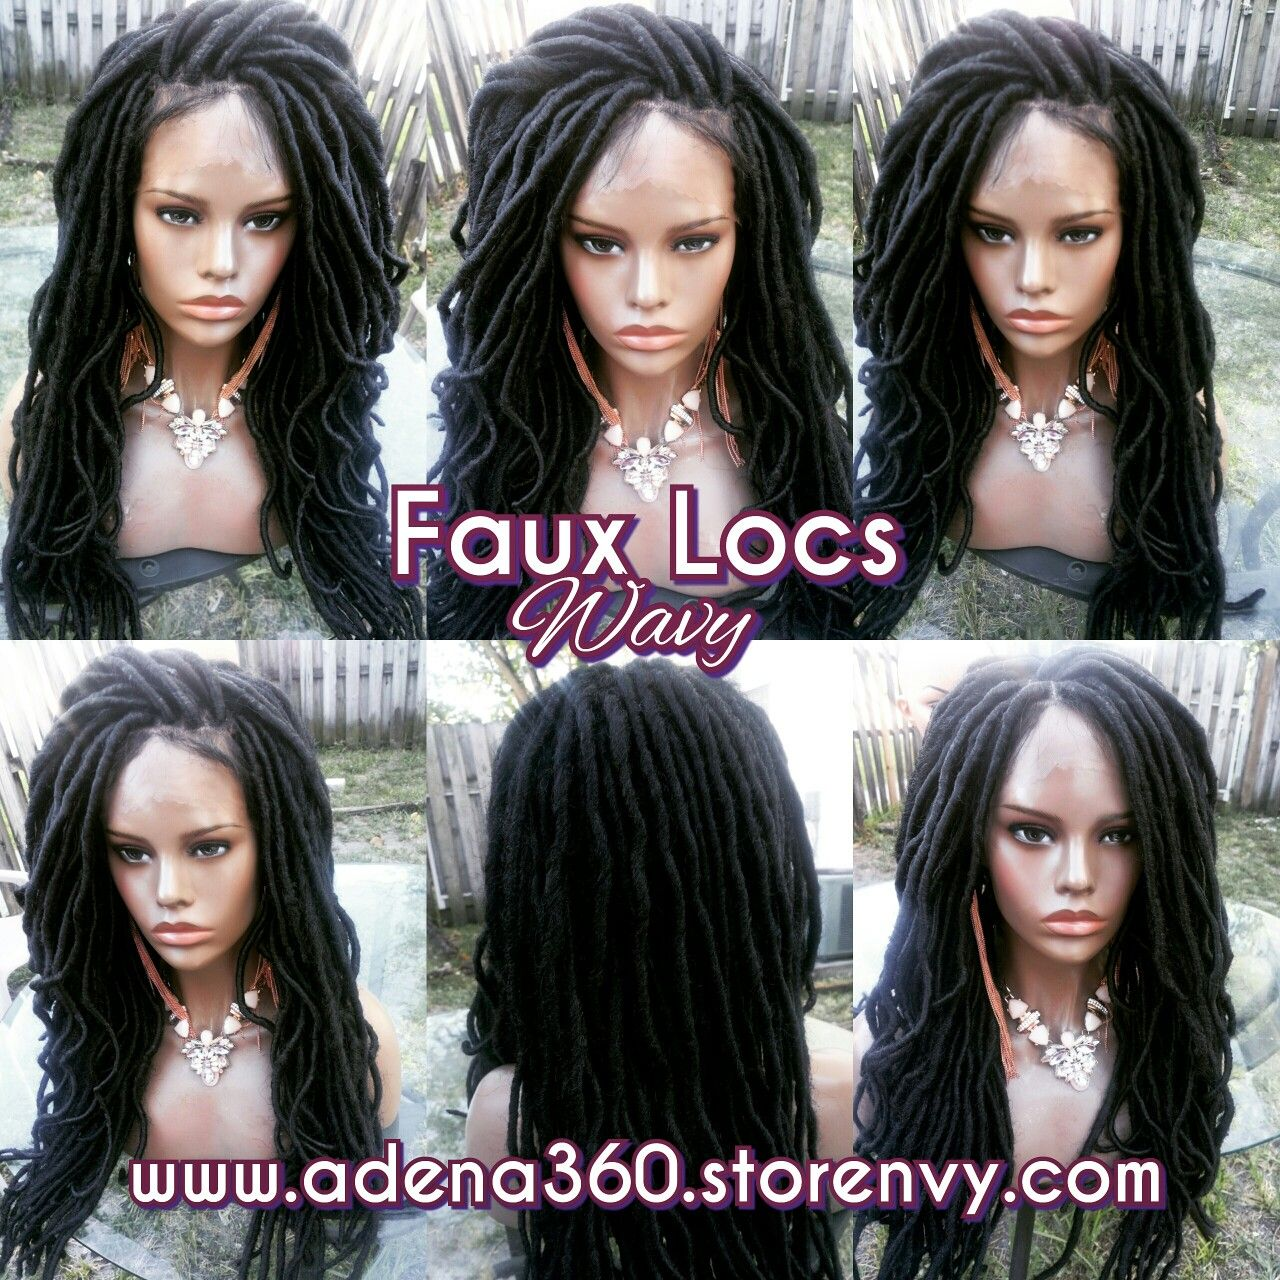 """Wavy faux locs lacefront in 18""""  Order here:  www.adena360.storenvy.com"""